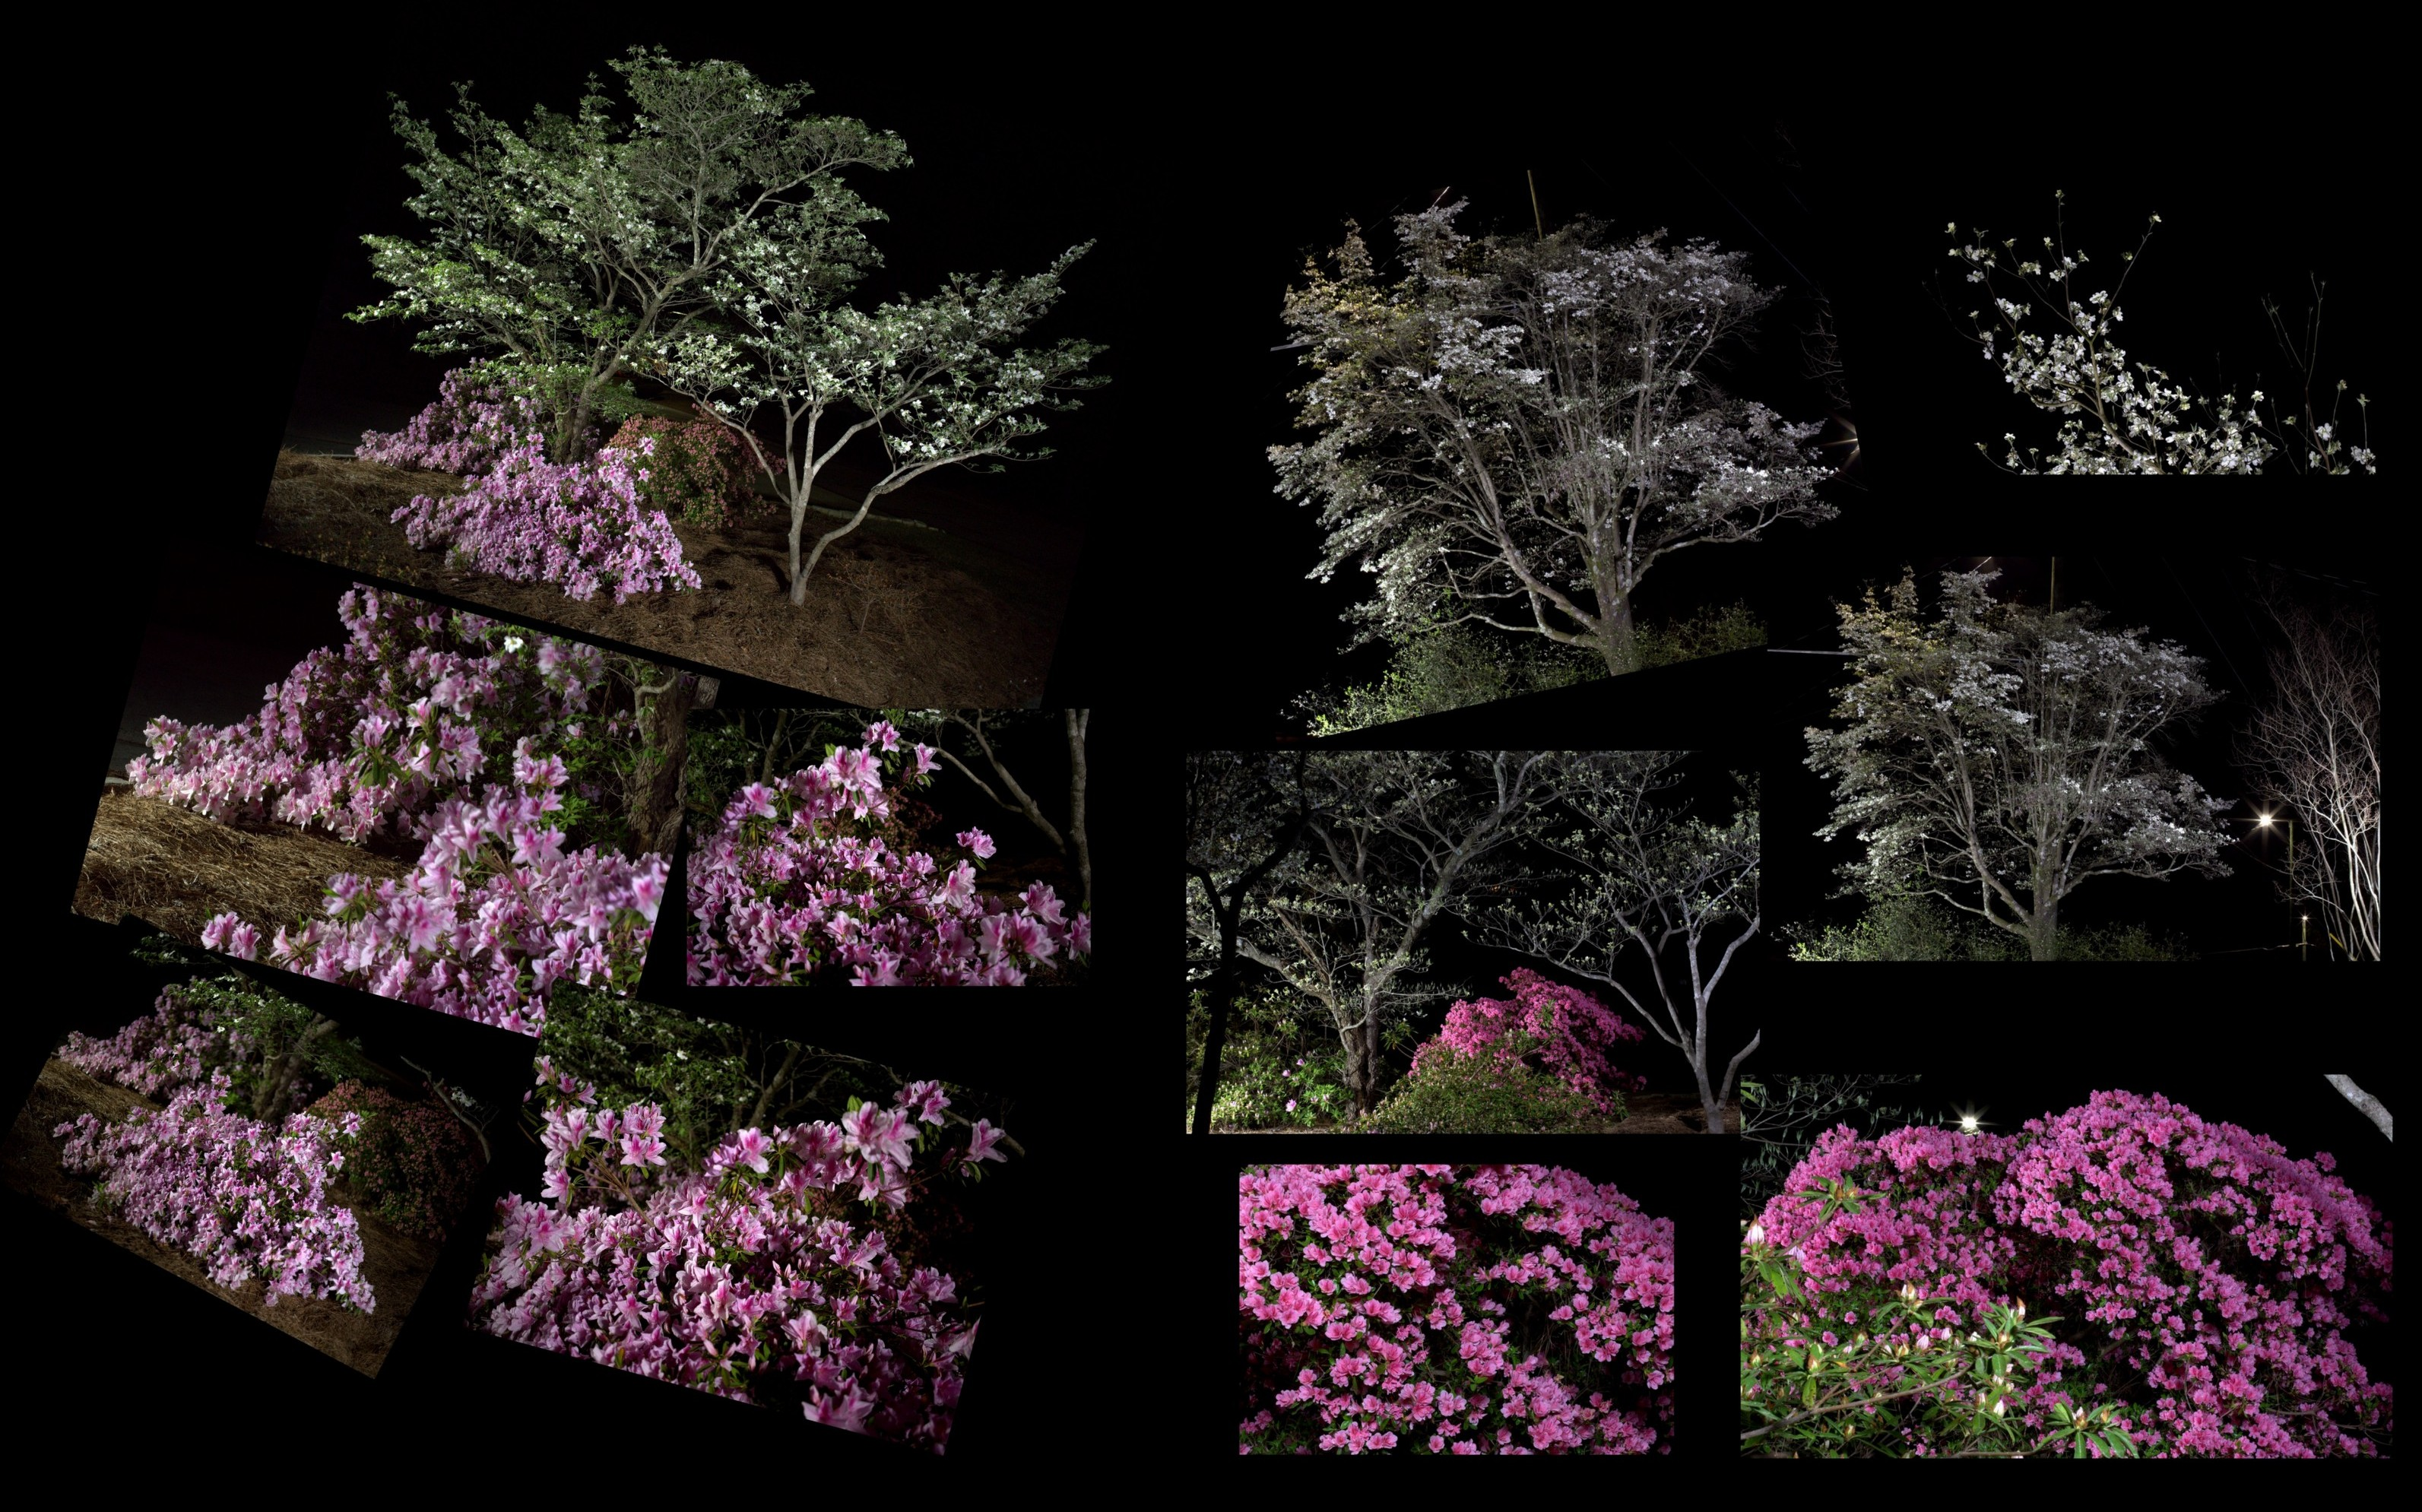 Photography ~ 04/02 and 04/13 Azaleas & Dogwoods Photo Shoots Combined